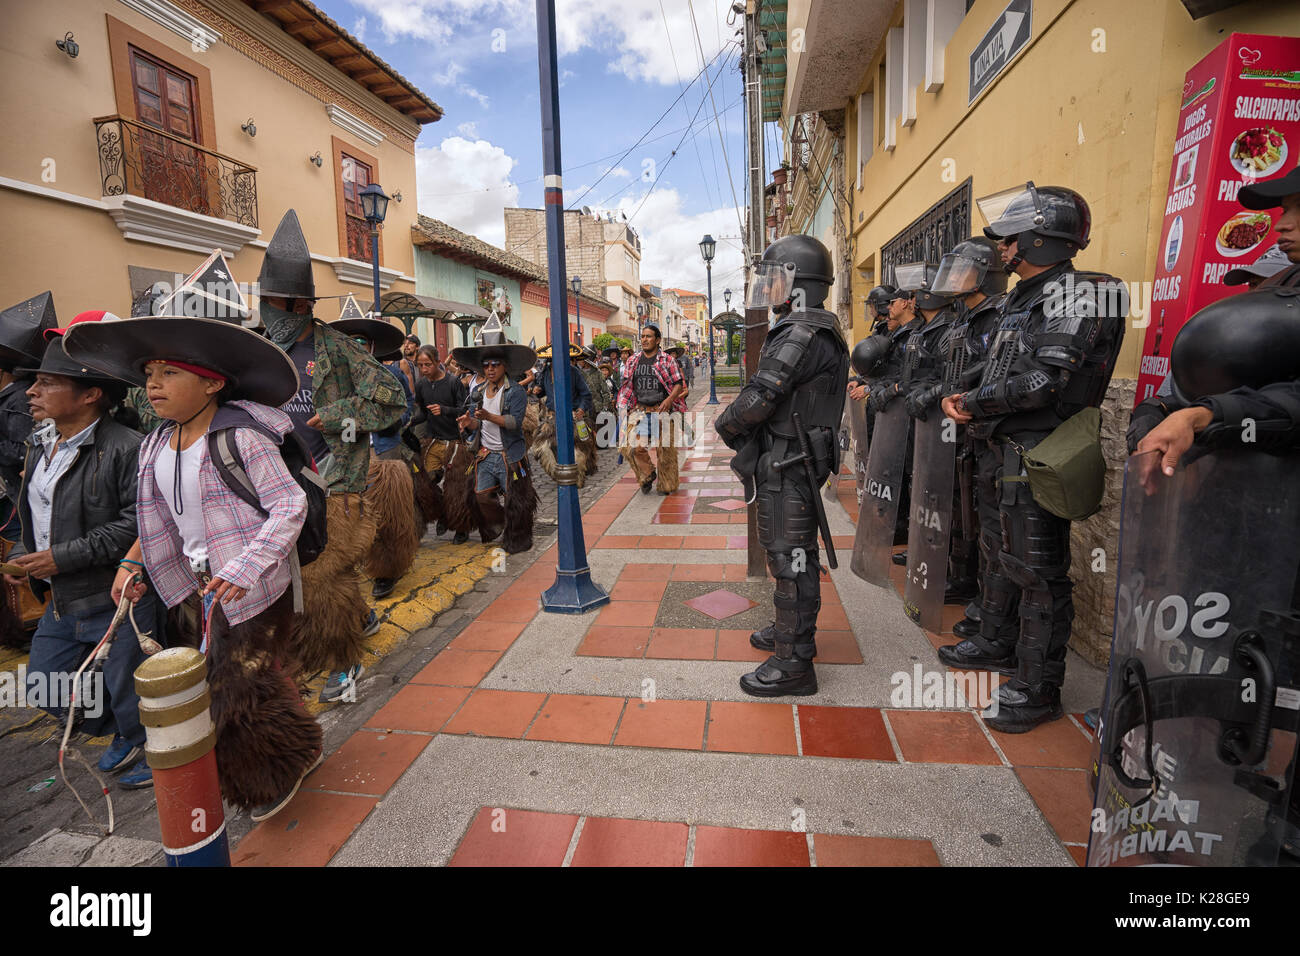 June 25, 2017 Cotacachi, Ecuador: riot police standing by as the male dances run down the street towards the main plaza - Stock Image